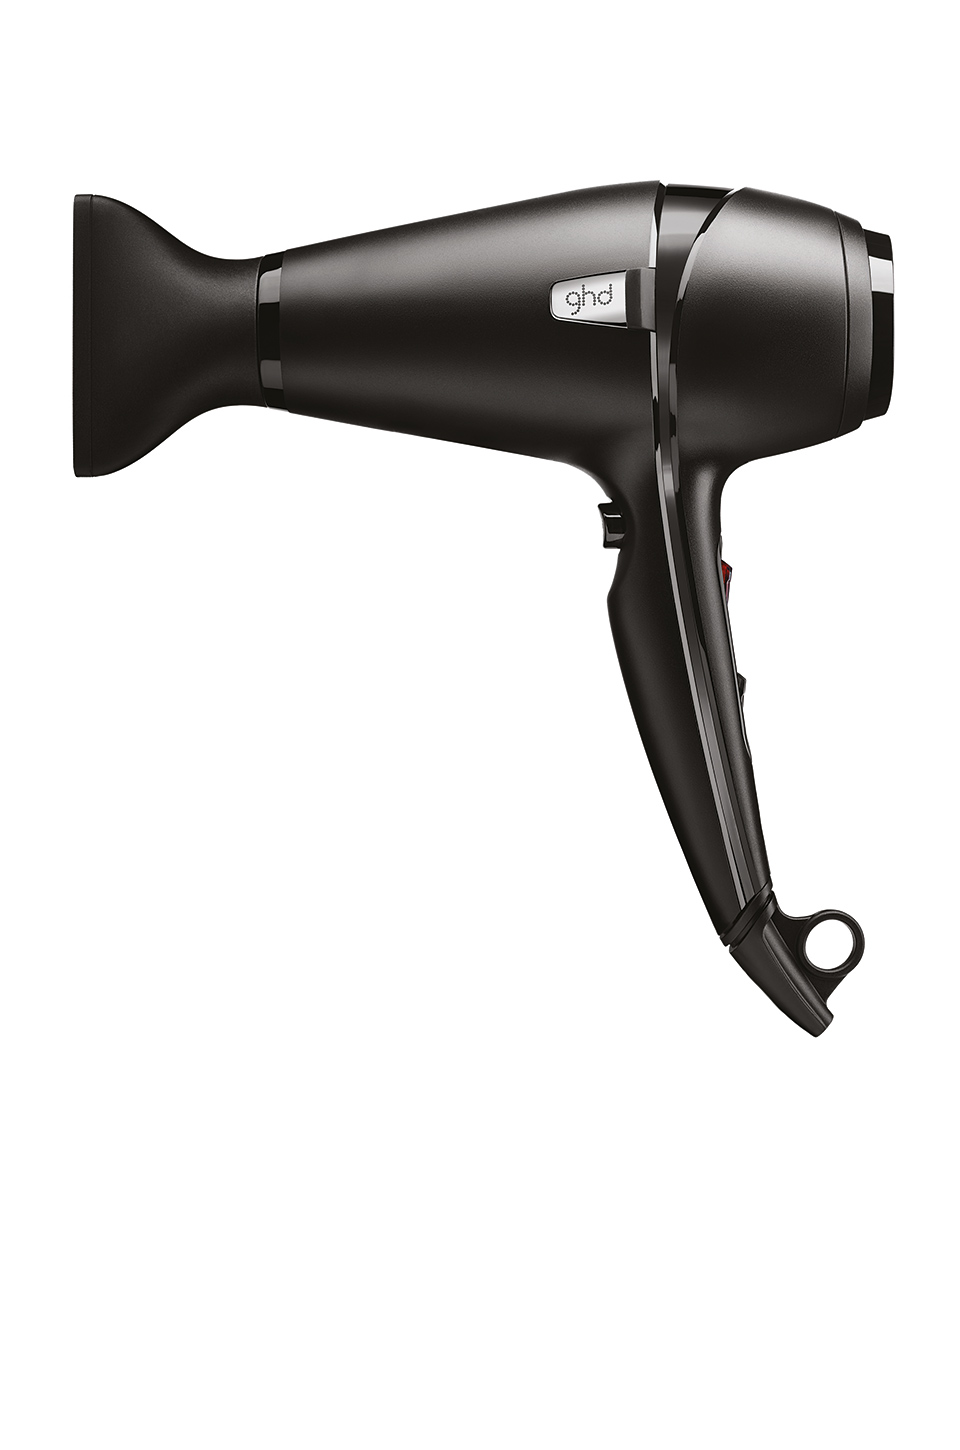 ghd Air Hair Dryer in Black